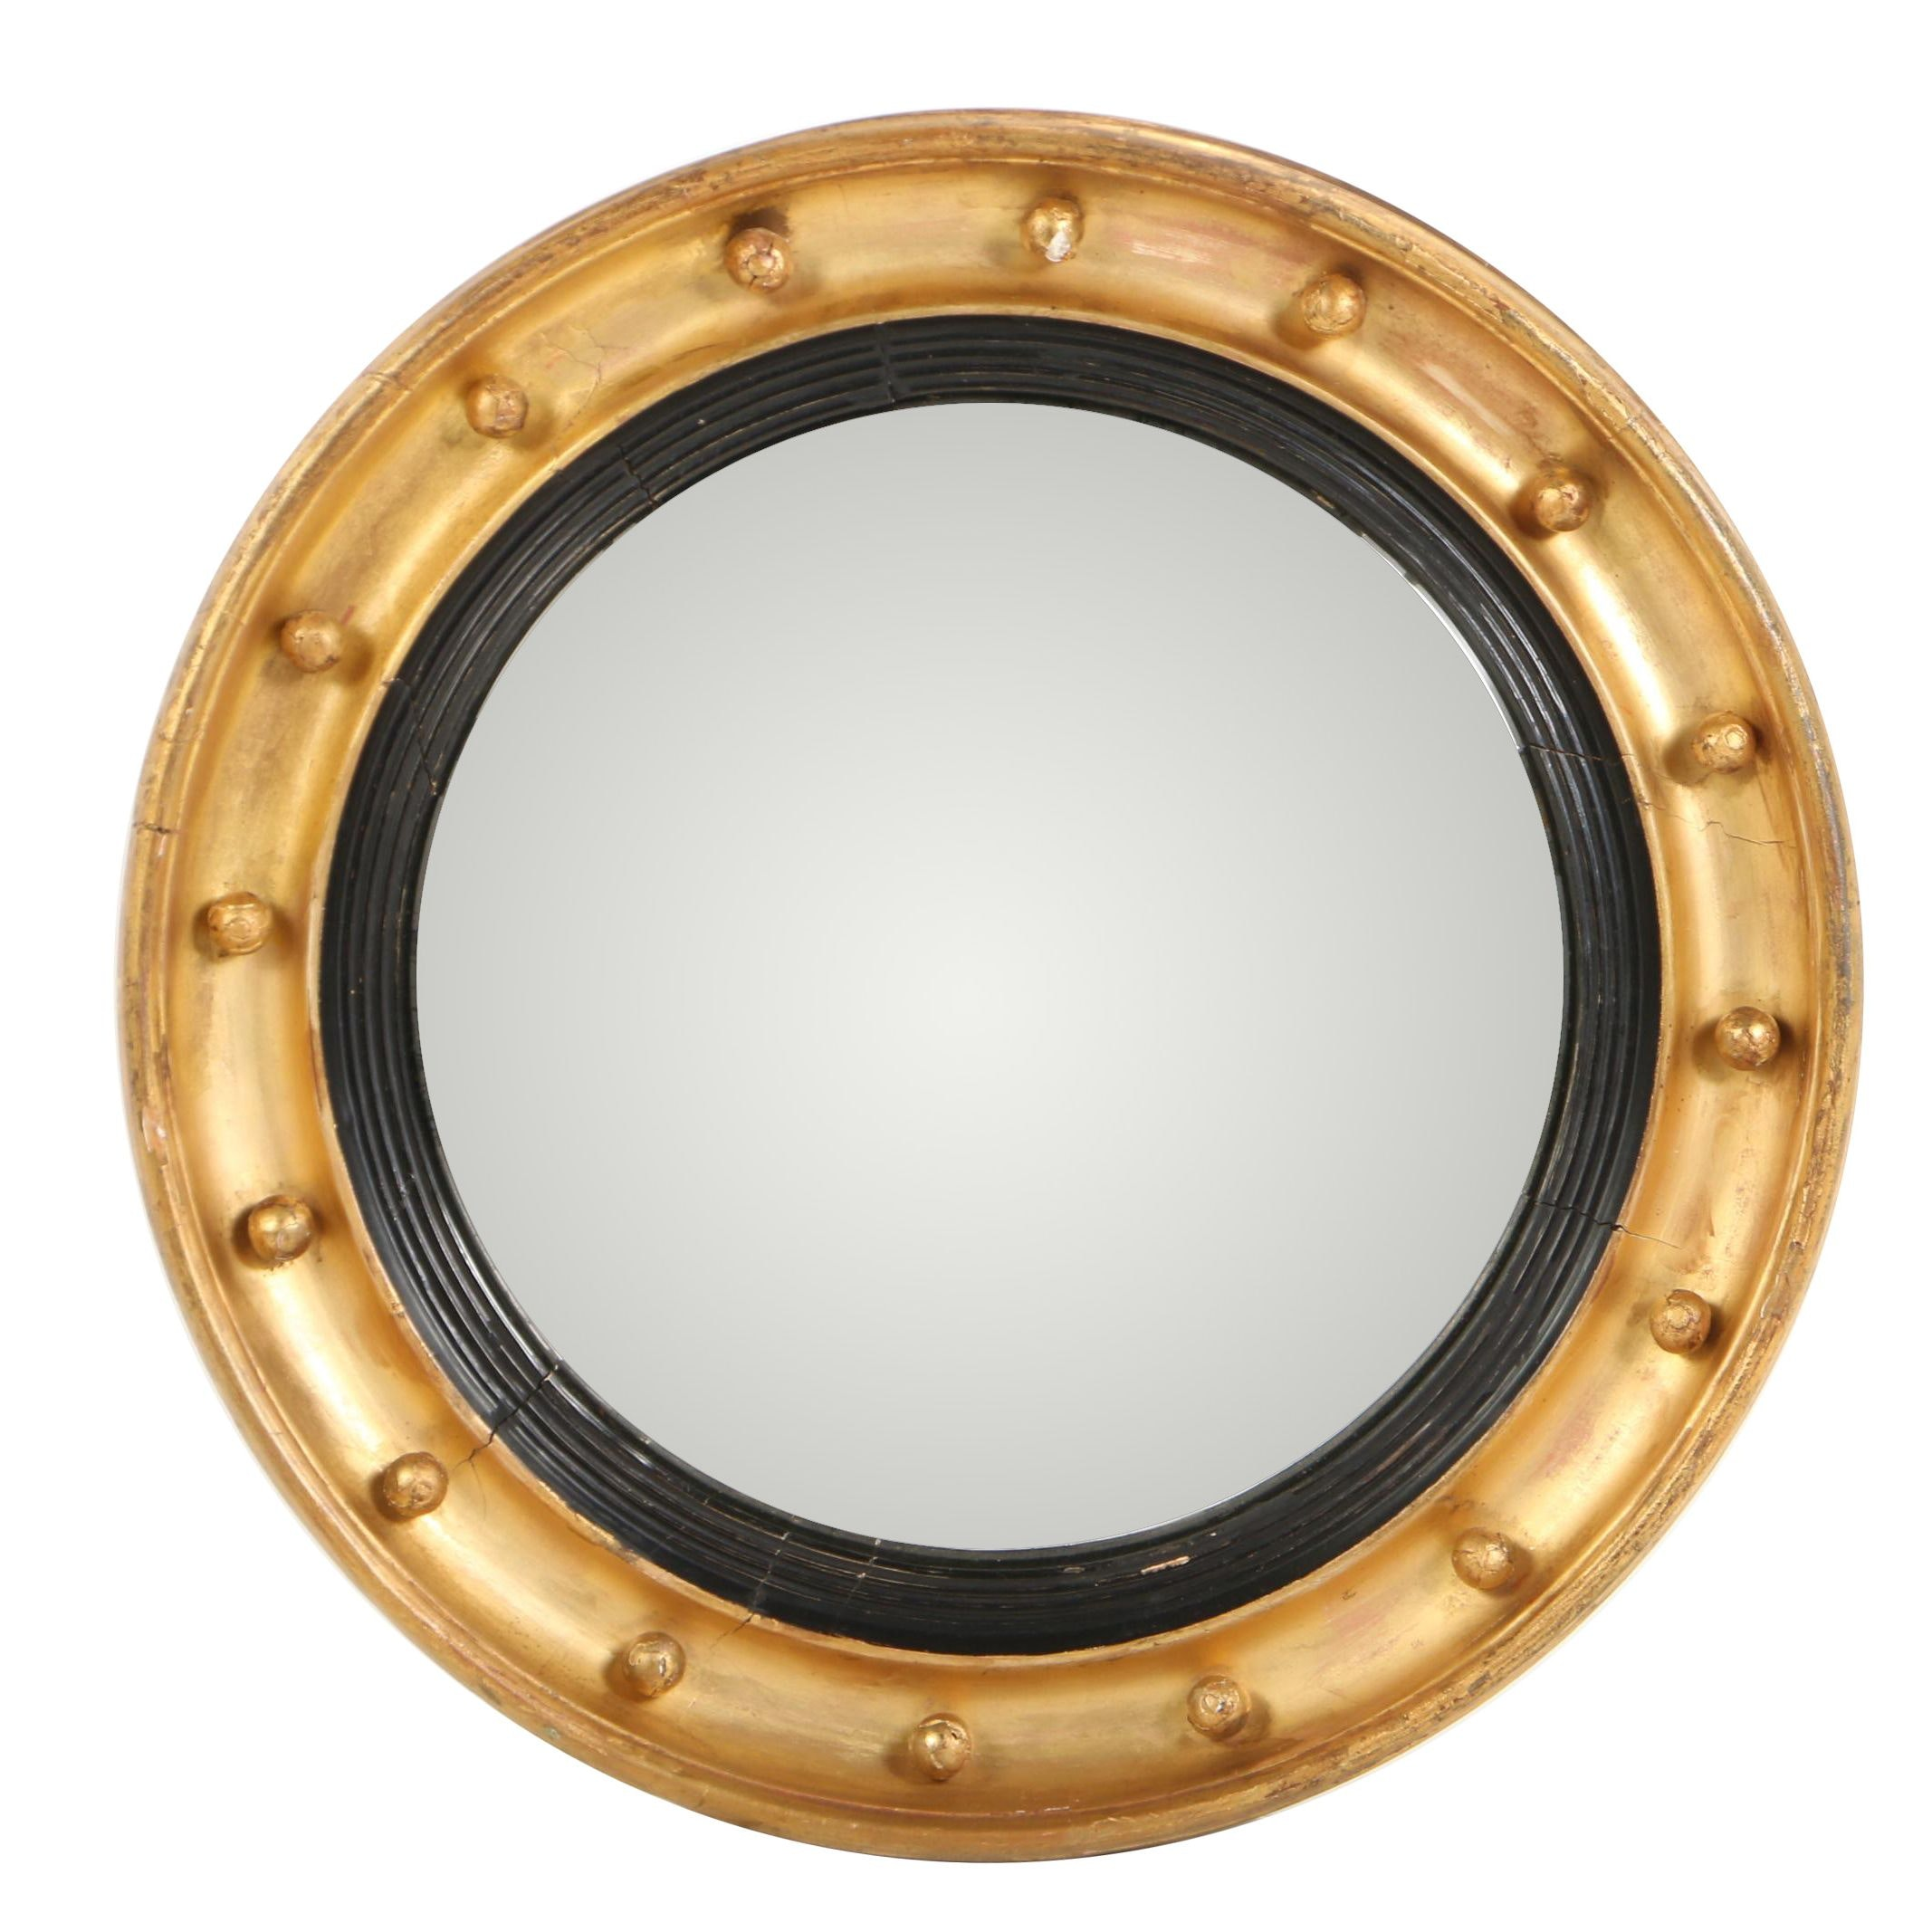 Giltwood and Gesso Round Convex Wall Mirror, Early 20th Century